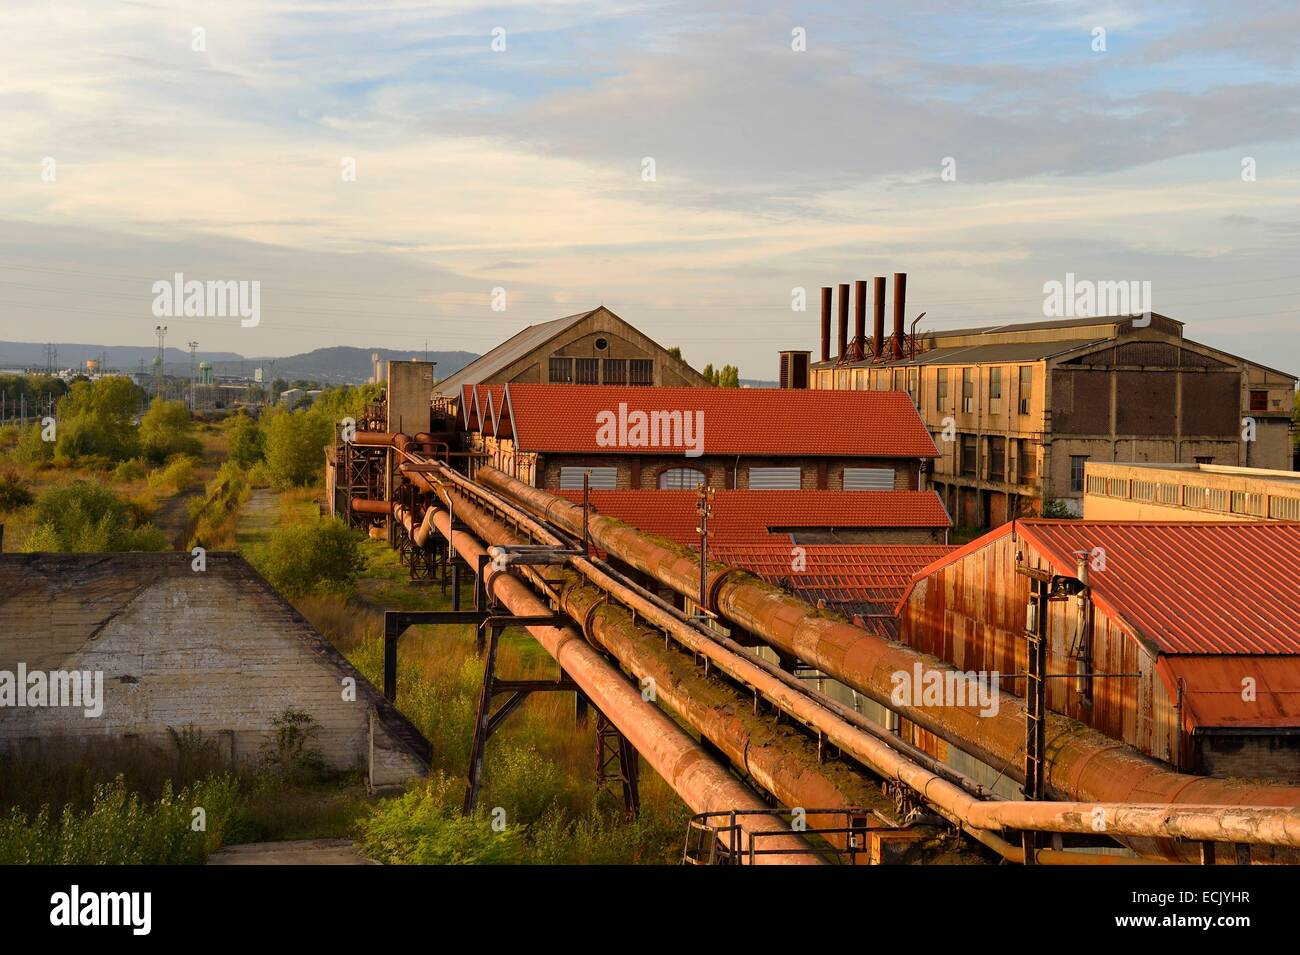 France, Moselle, Fensch Valley, Uckange steel mill, Blast furnace U4 park - Stock Image